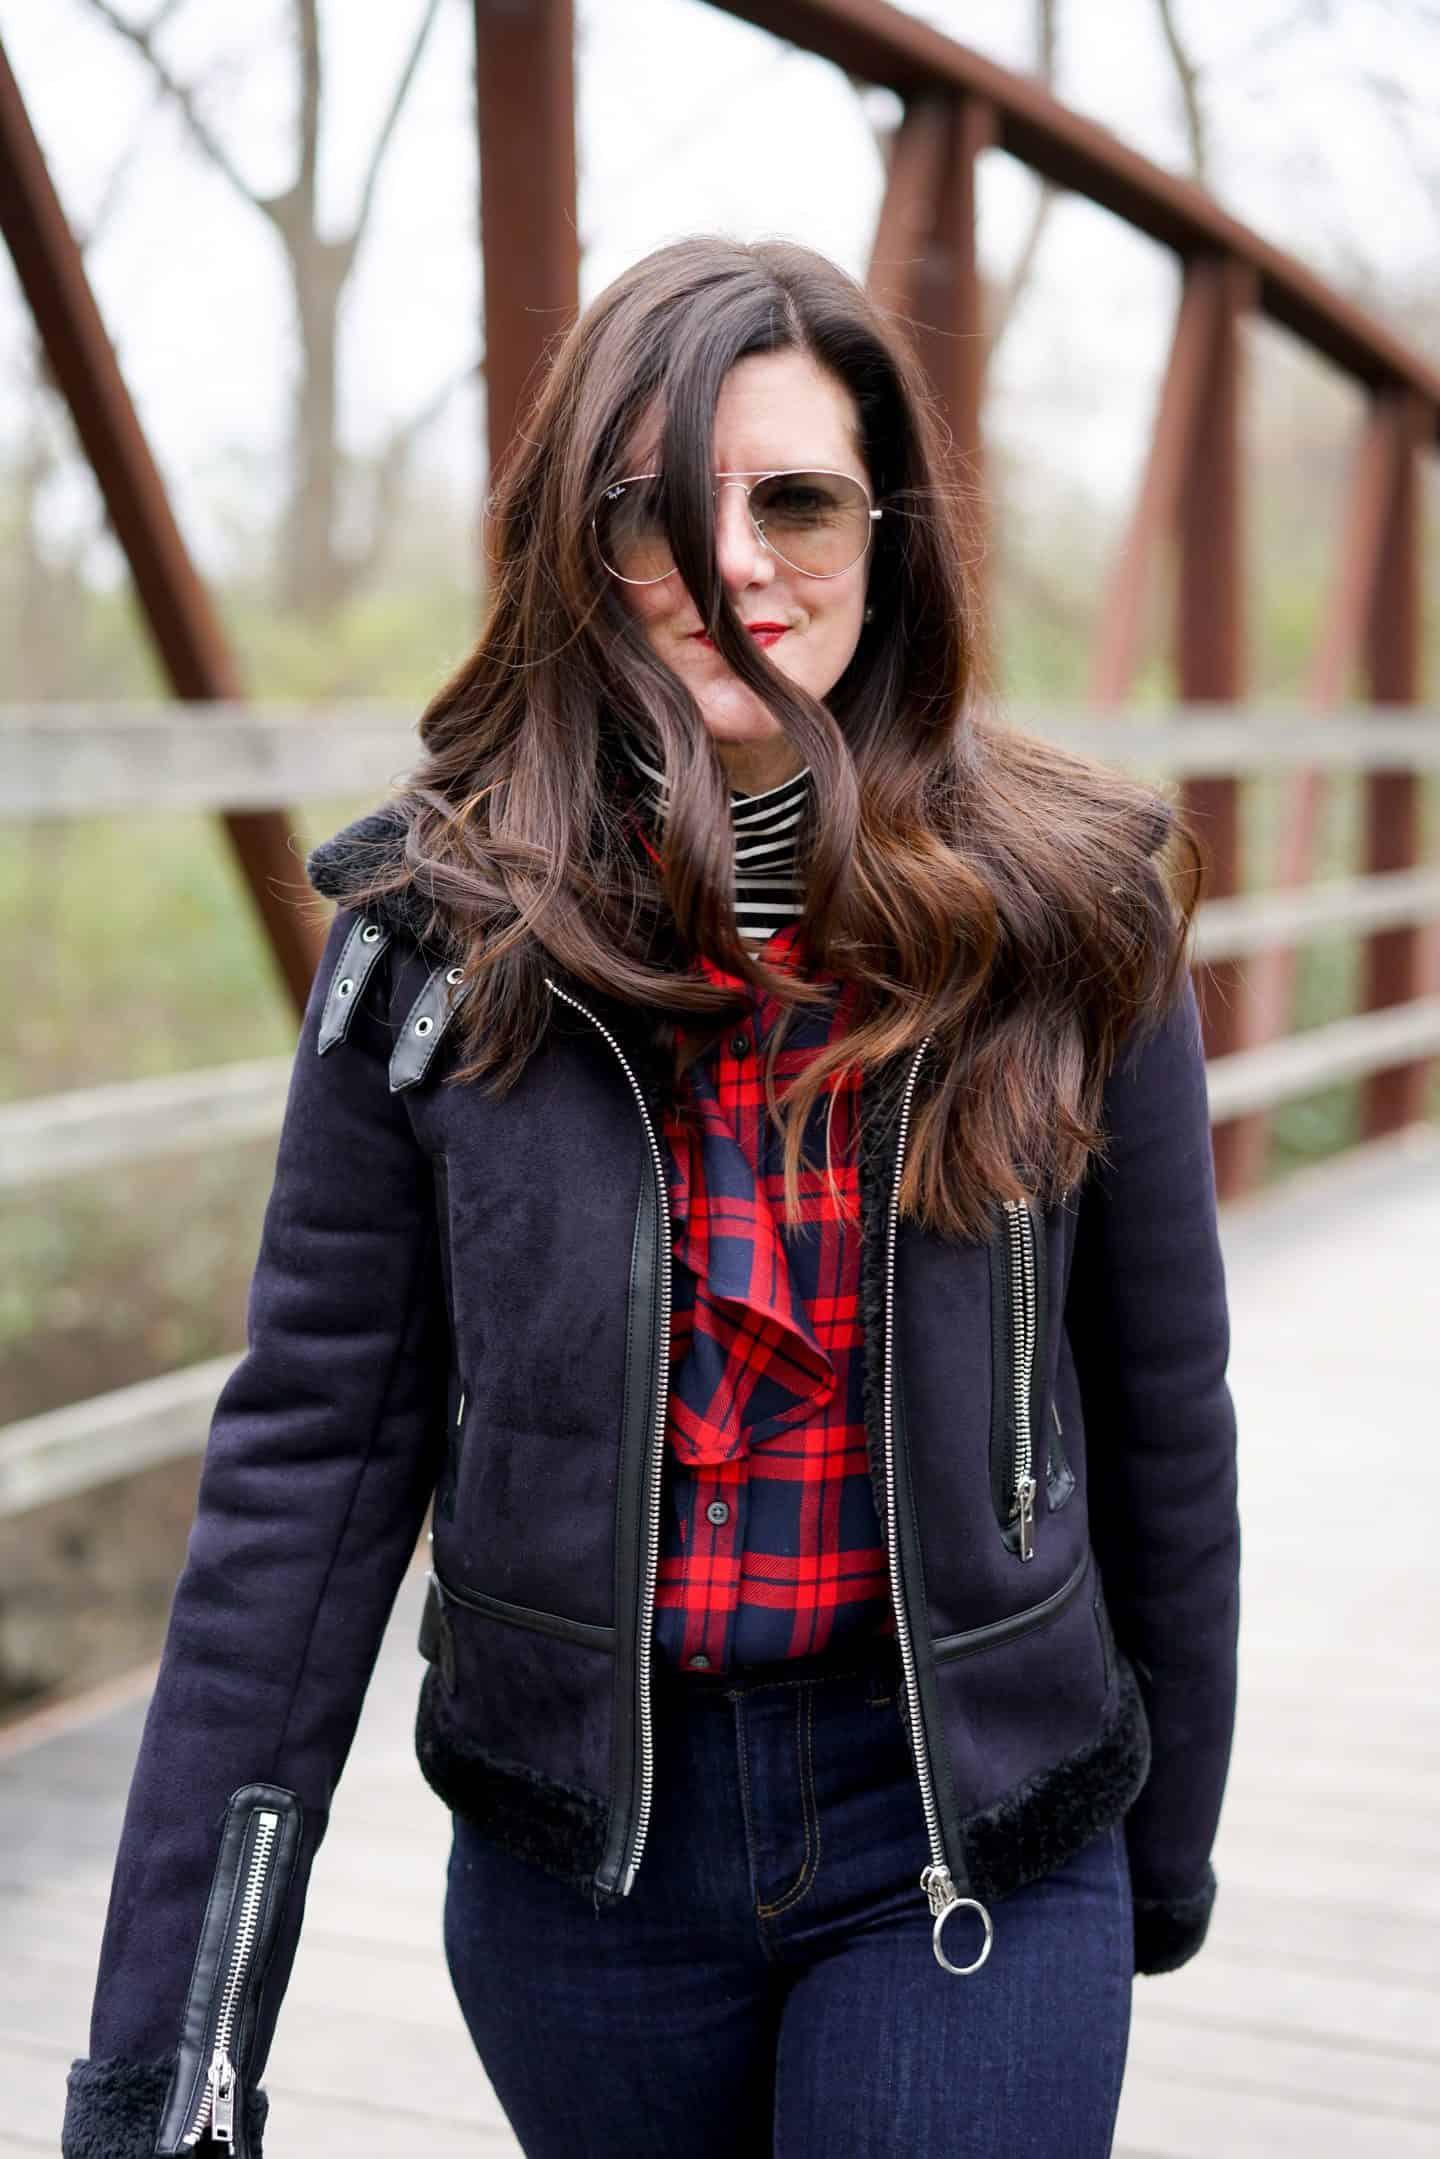 Zara Shearling Coat, Banana Republic Plaid Top, A Lily Love Affair, Ann Taylor Petite Skinny Jeans, Chicago Blogger, 5 things to do this weekend in Chicago, Fall Style